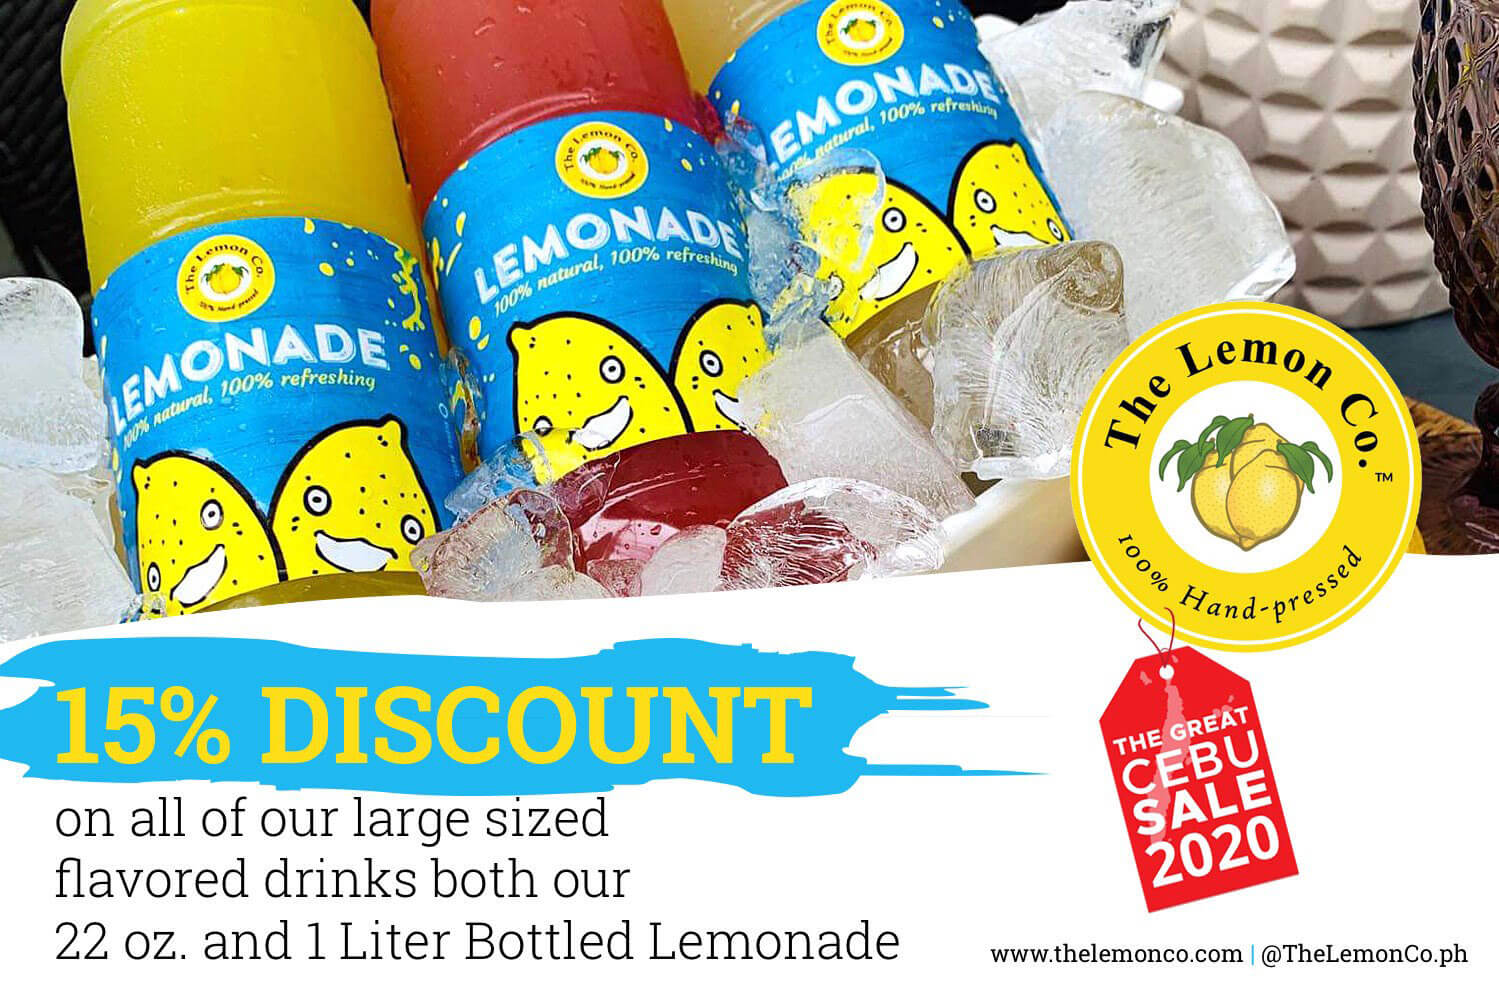 The Lemon Co. offers 15% discount